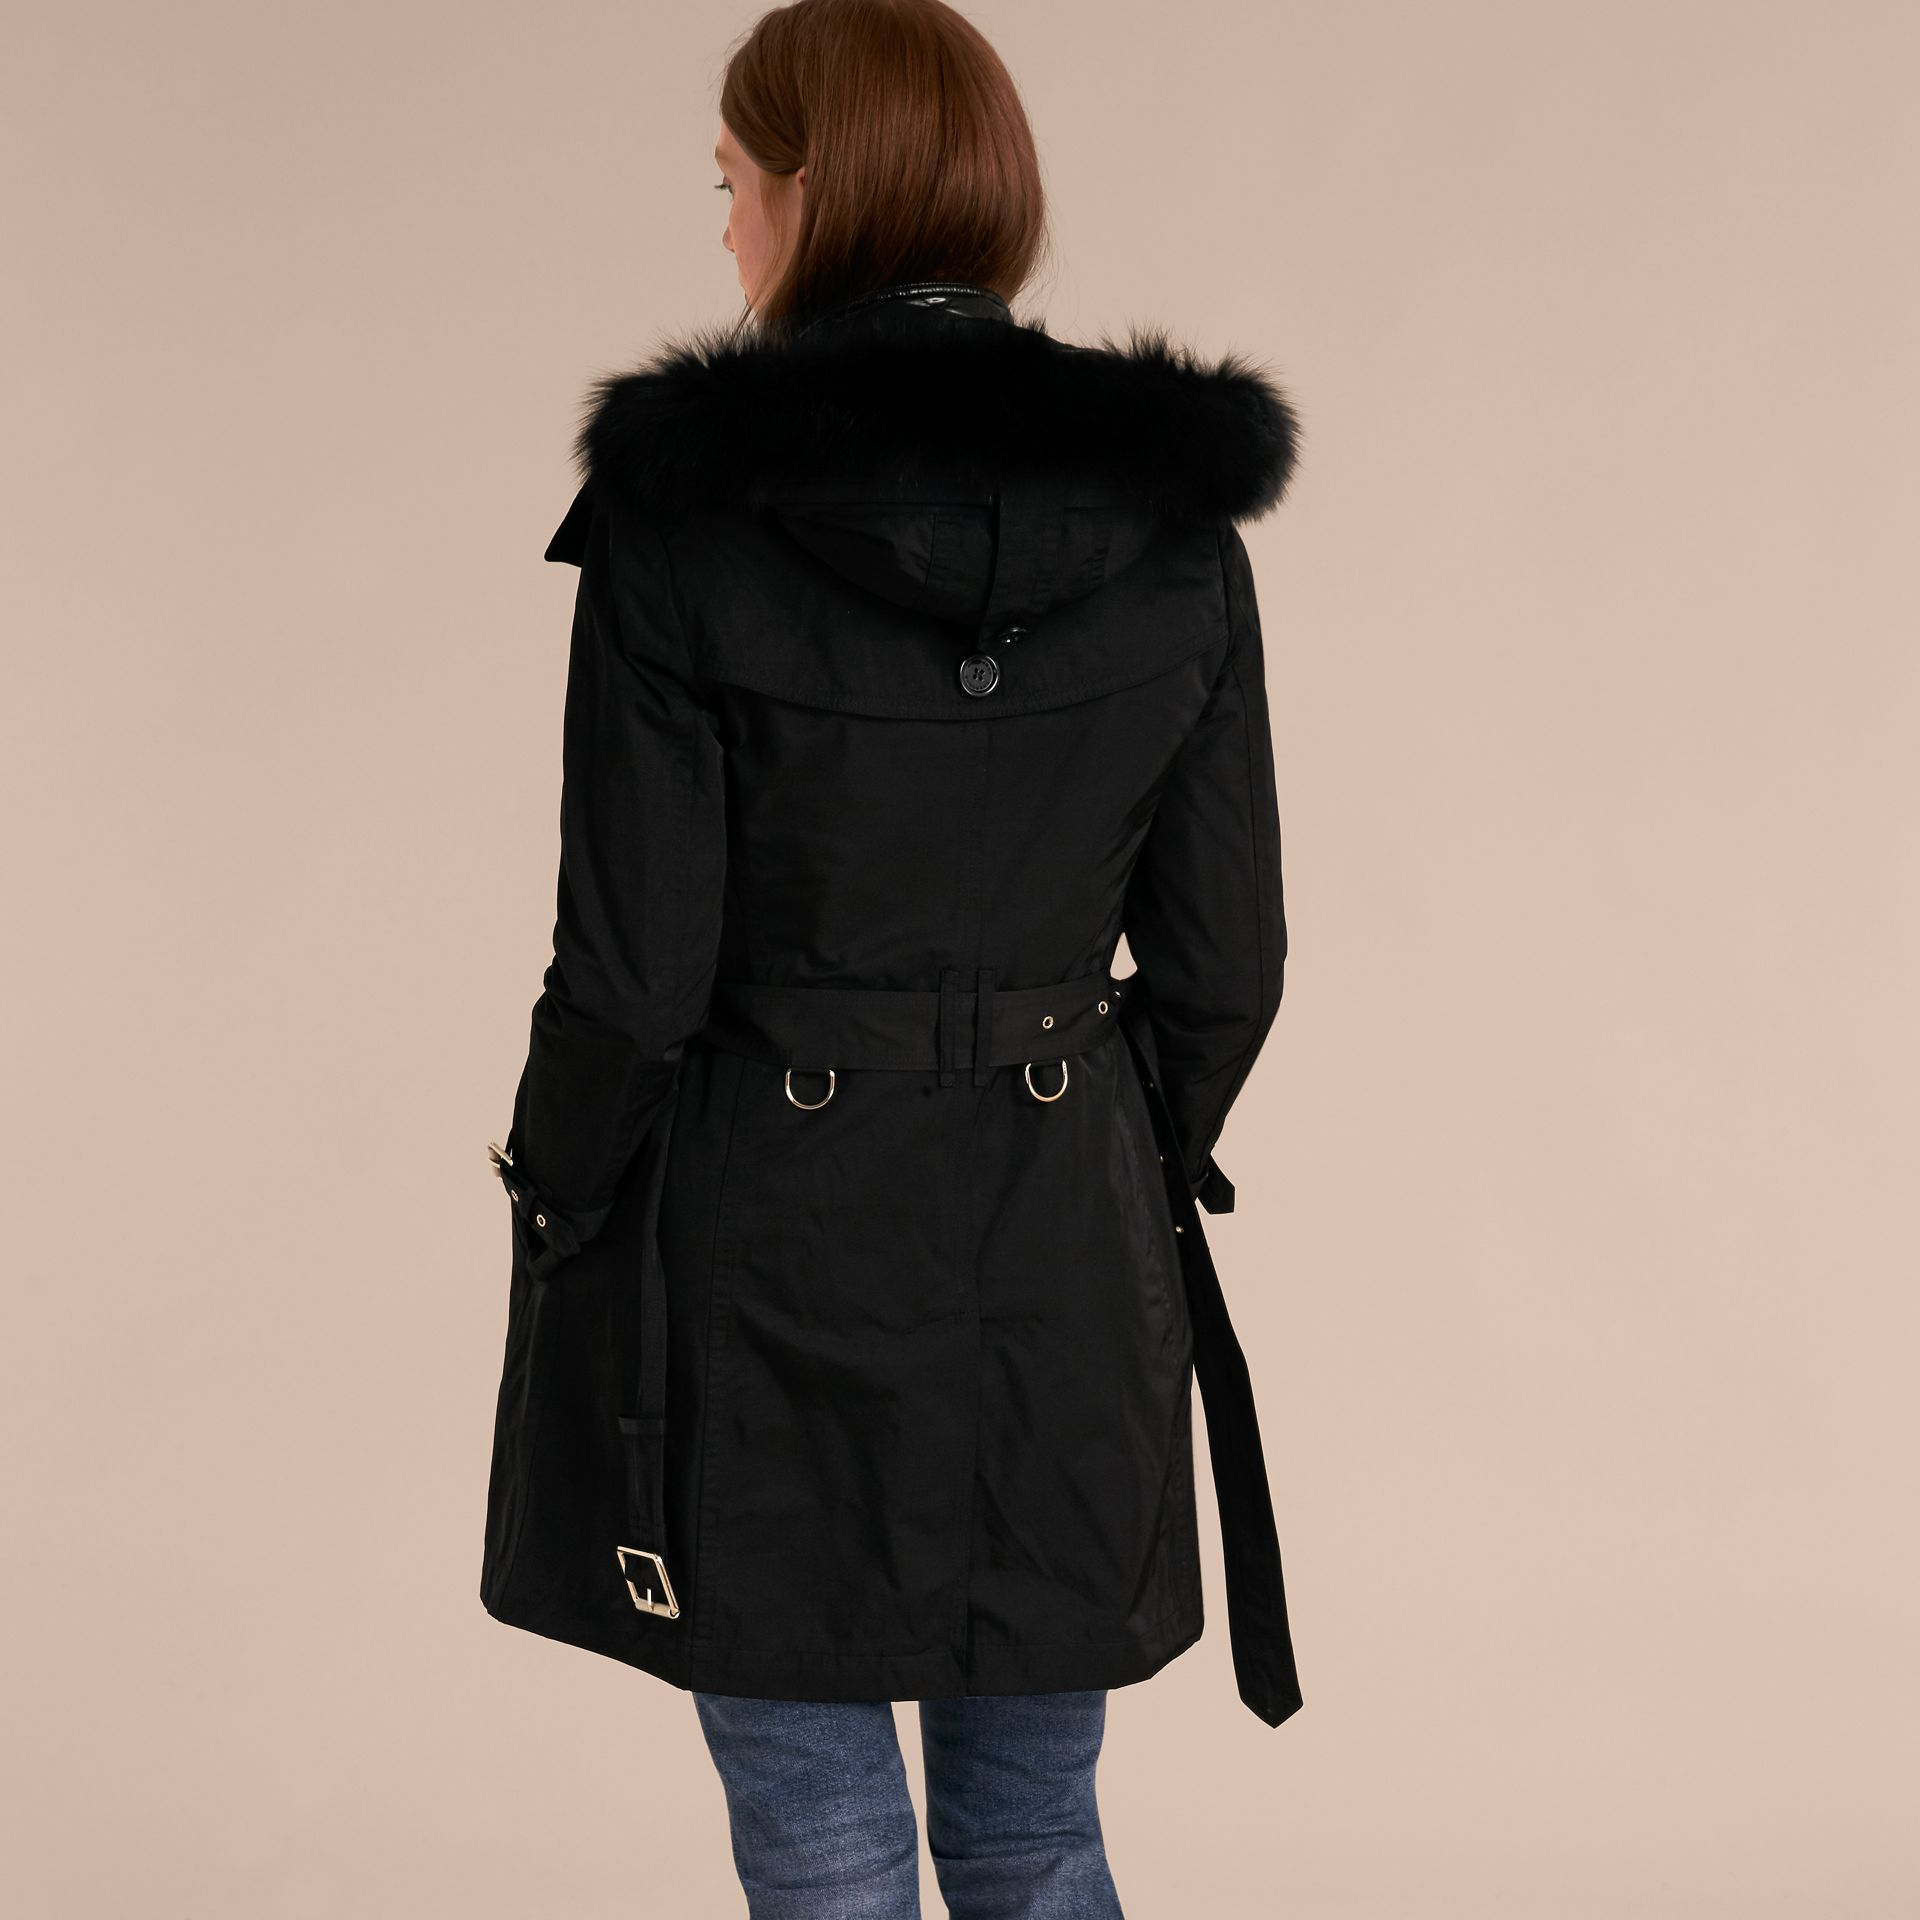 Black Fur-trimmed Hood Trench Coat with Detachable Gilet Black - gallery image 3